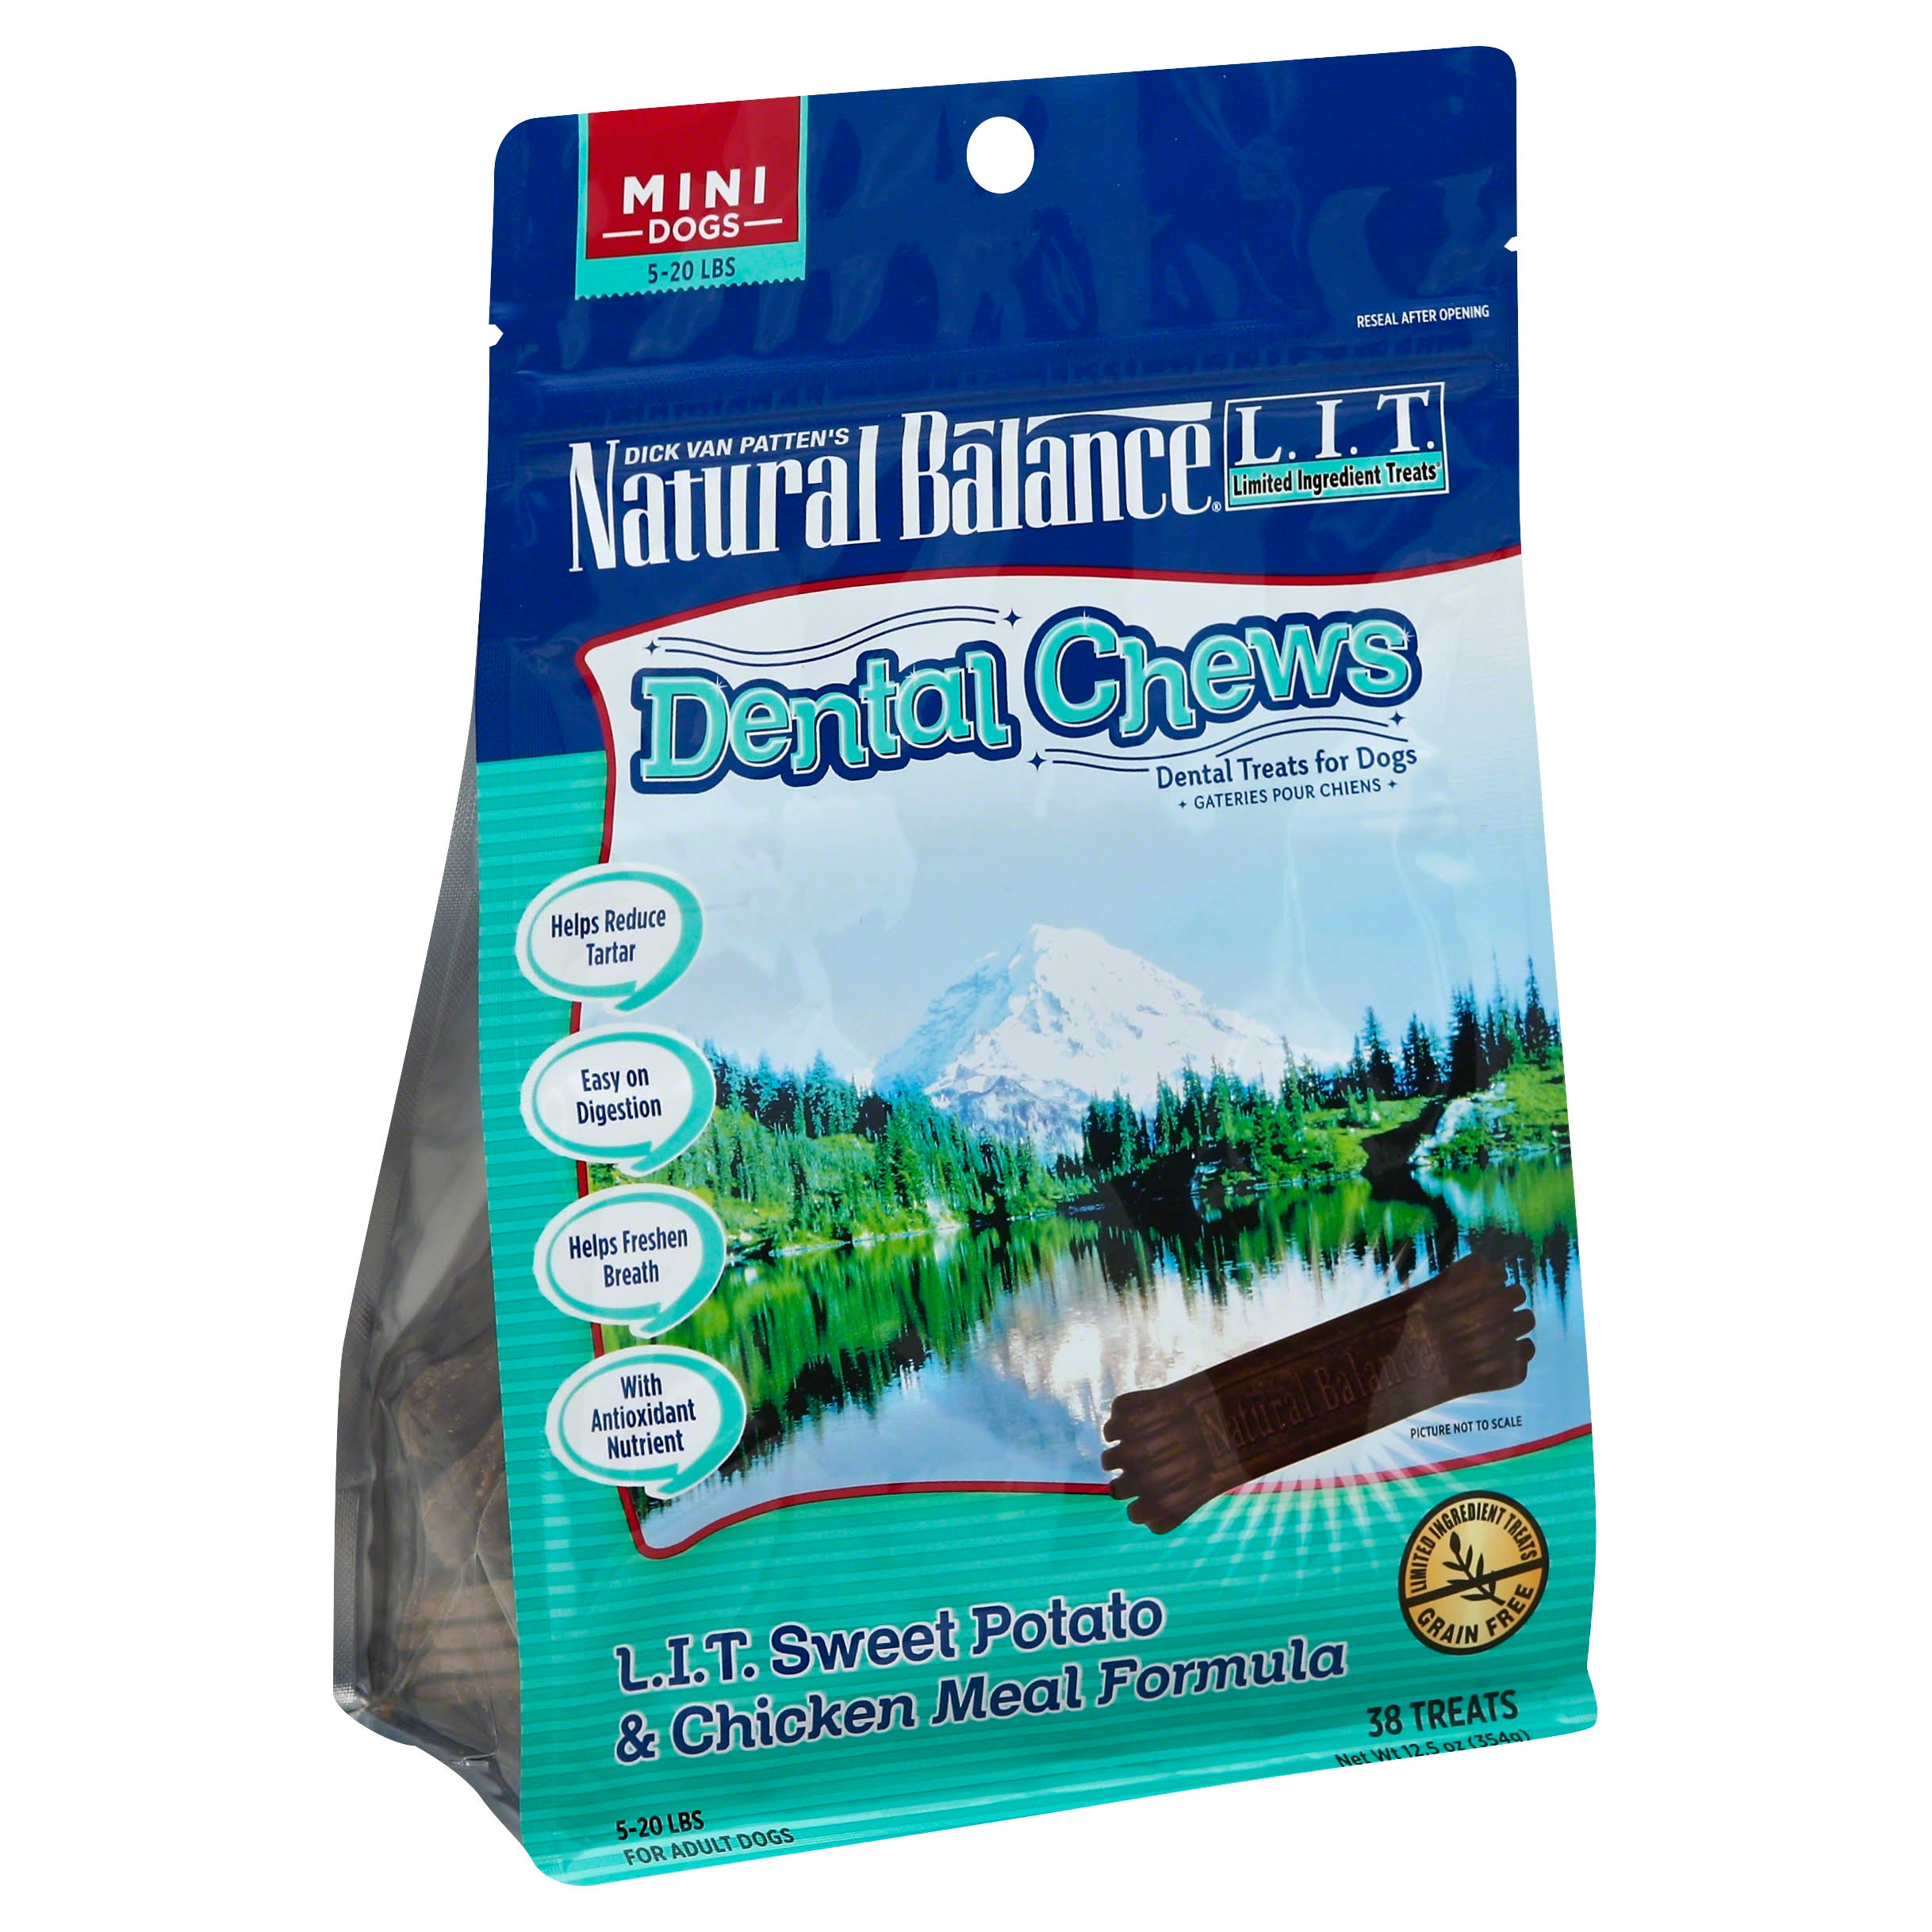 Natural Balance Dental Chews Dog Treats - Limited Ingredient Treats Sweet Potato and Chicken Meal, 12.5oz